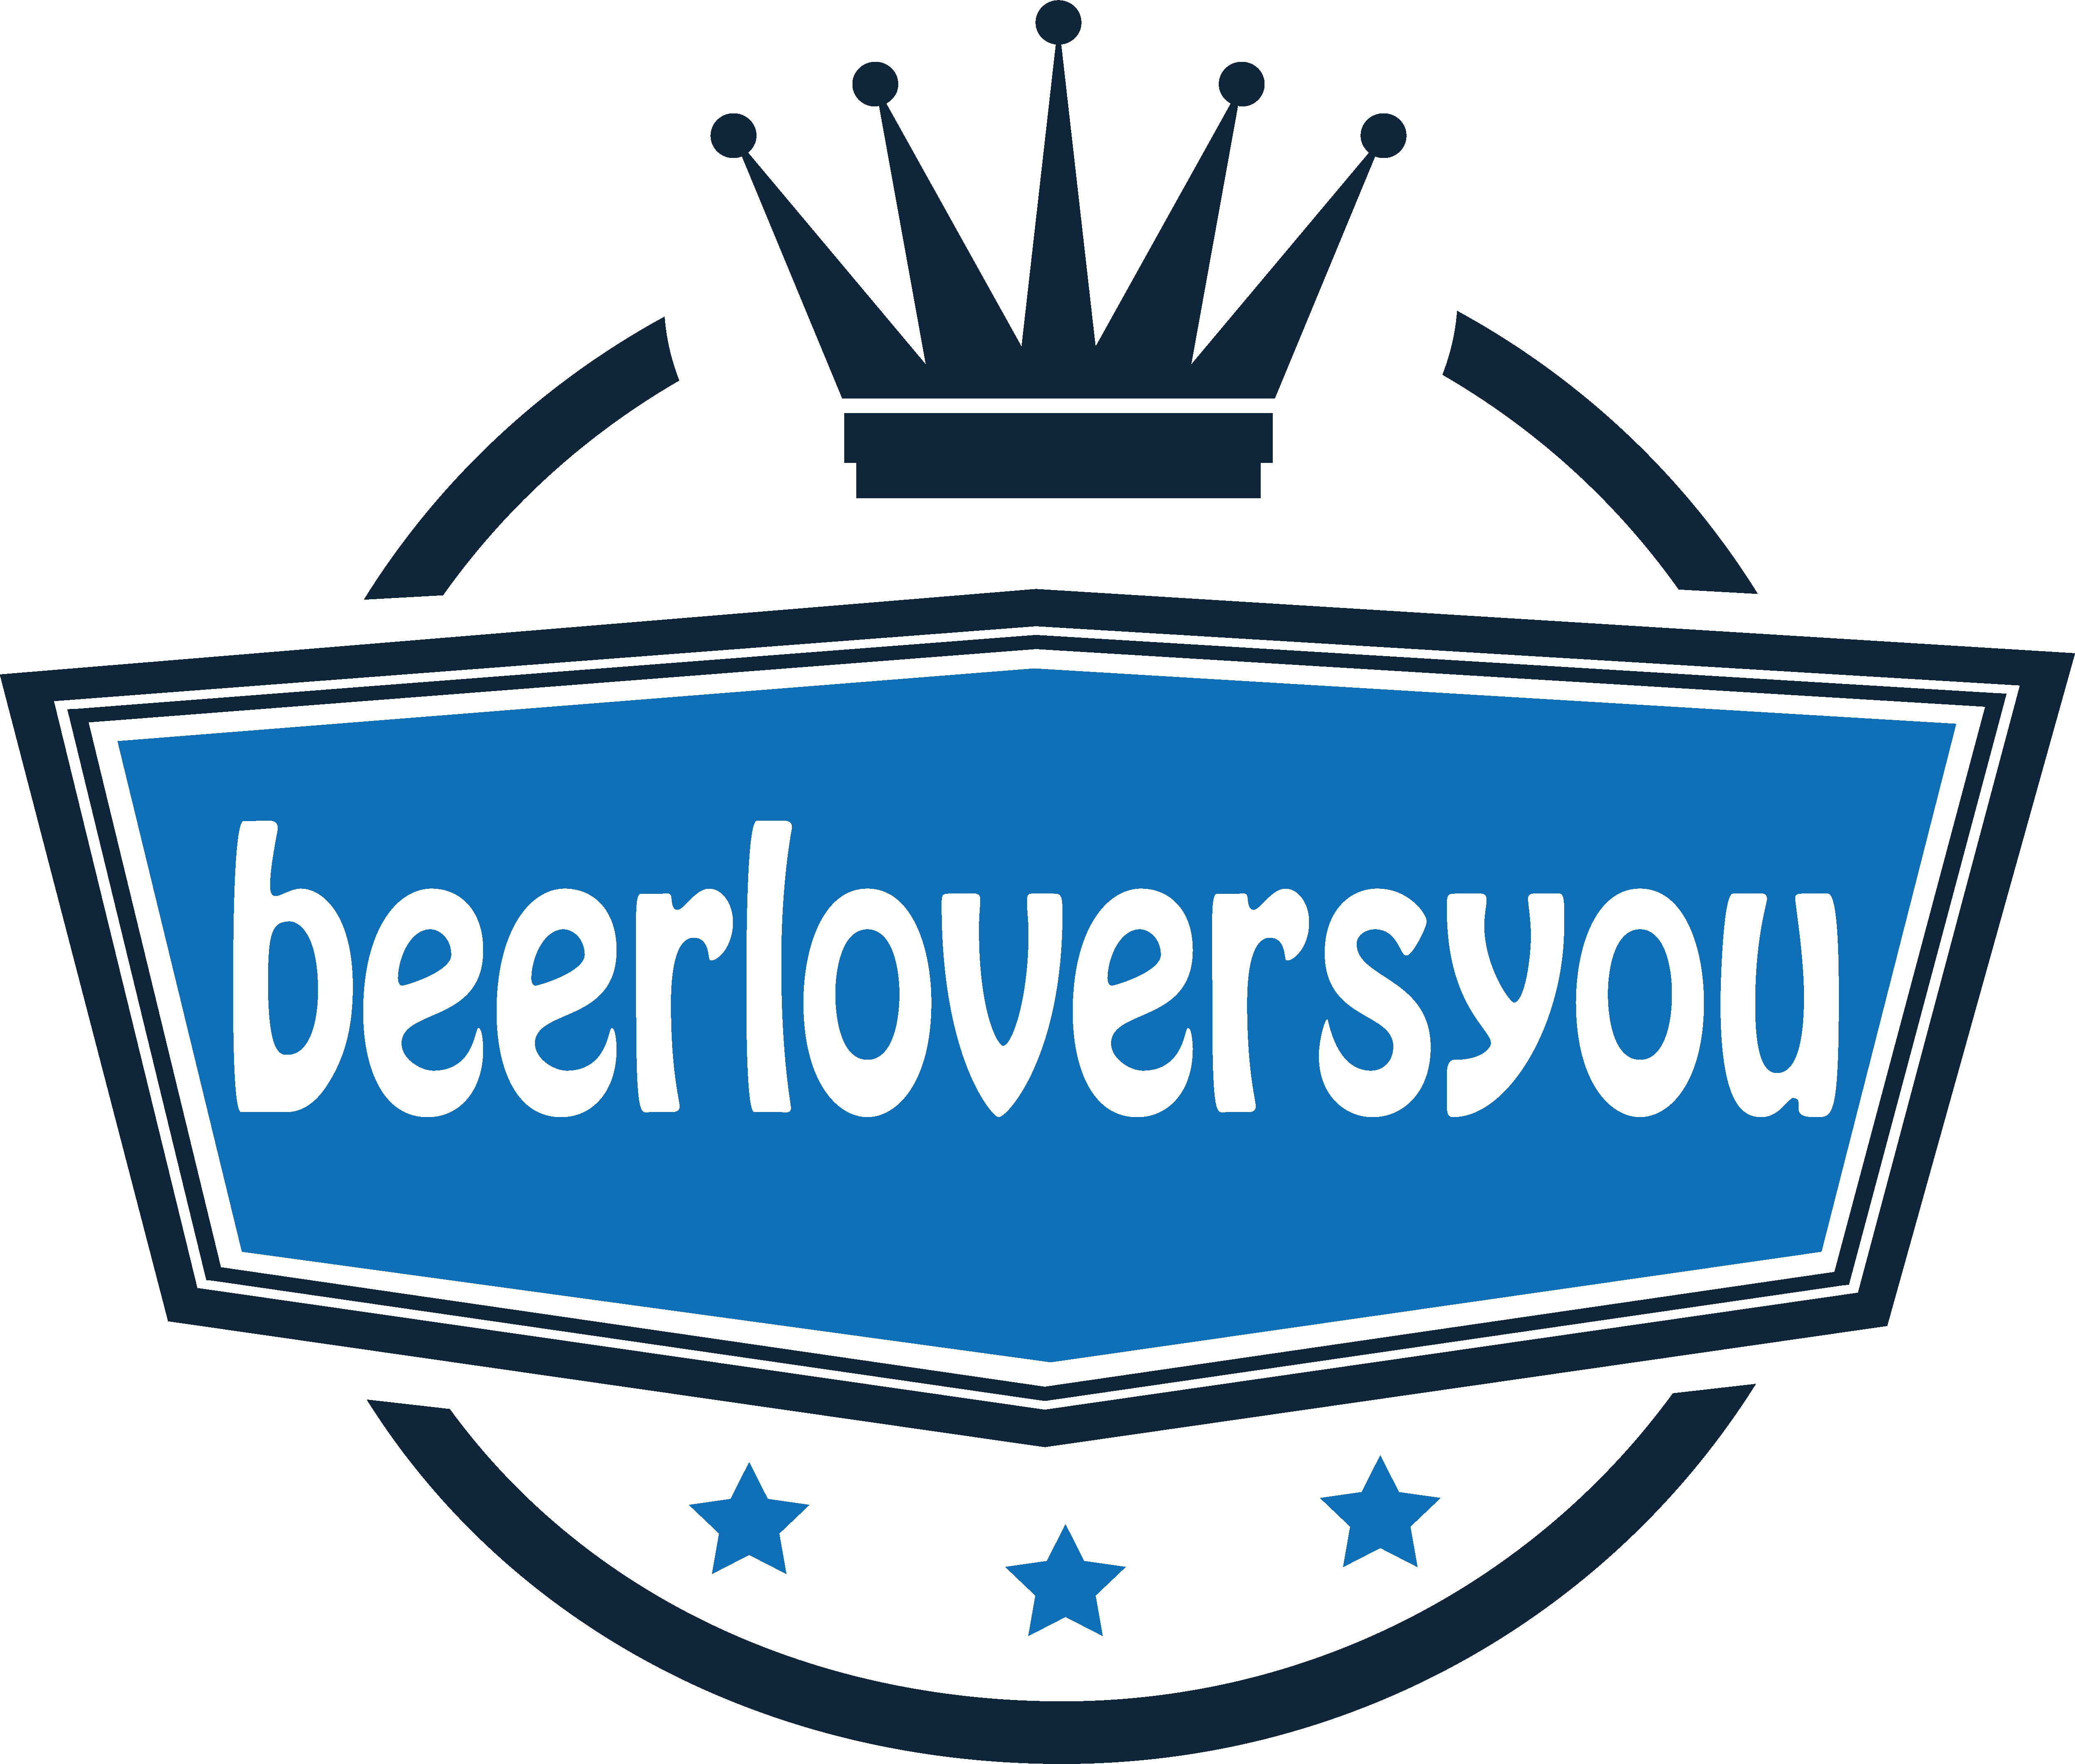 https://beerloversyou.ch/wp-content/uploads/2019/03/Logo-1-1.png